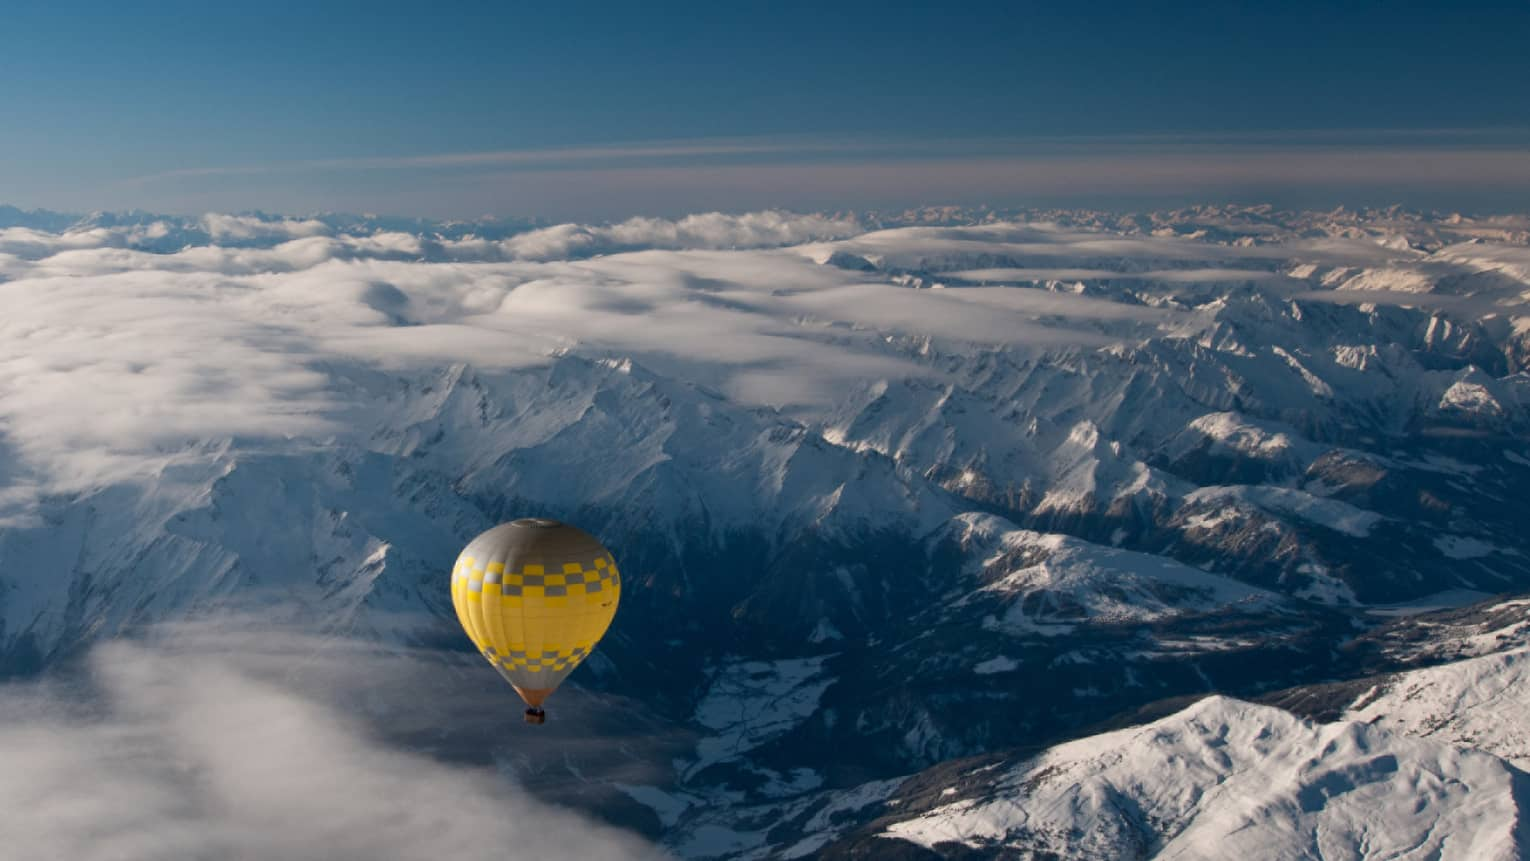 Yellow hot air balloon soaring over the snow-covered Alps